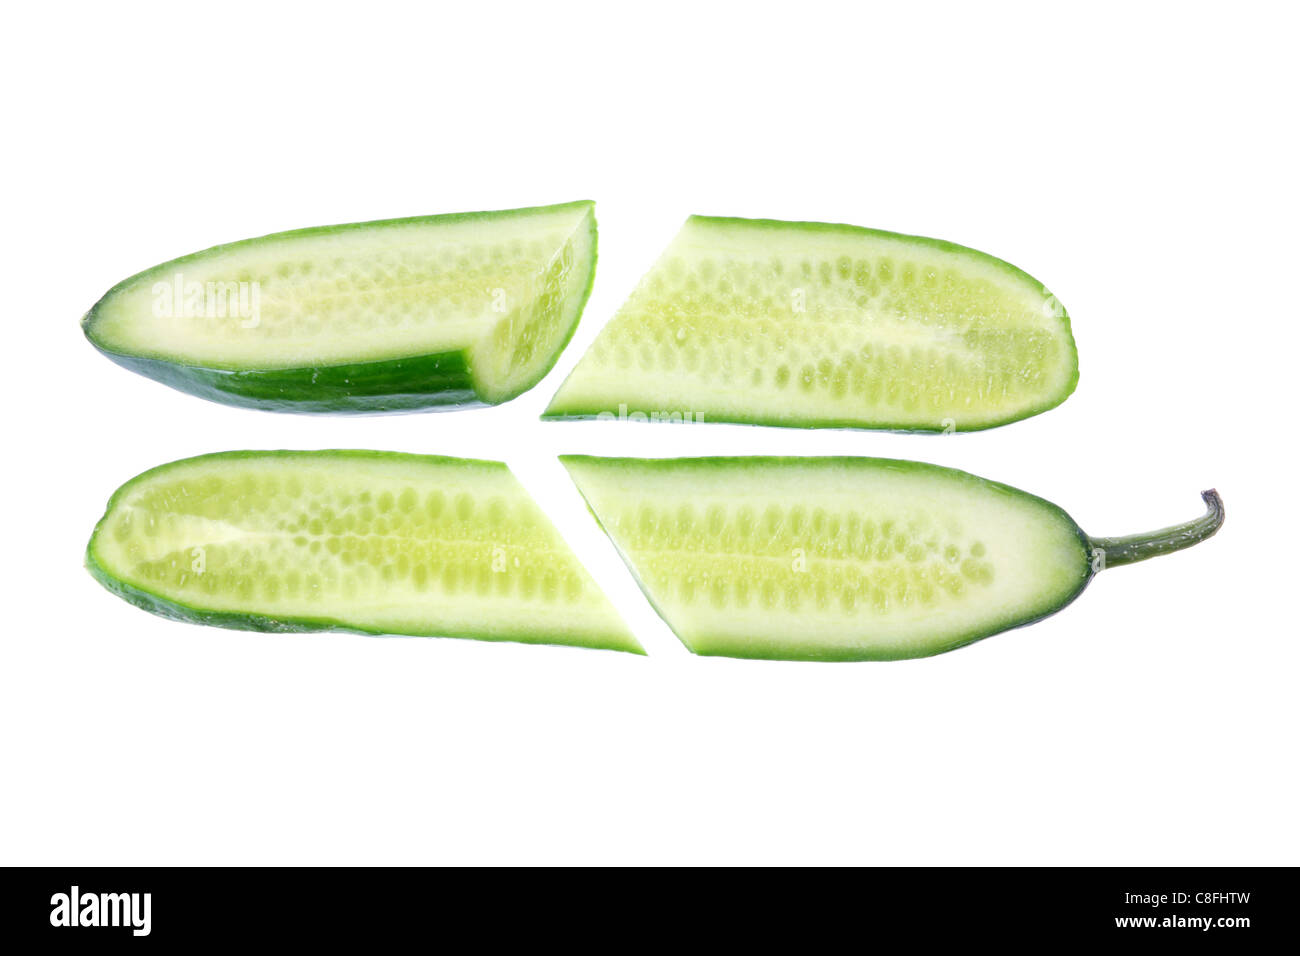 Pieces of Lebanese Cucumber - Stock Image